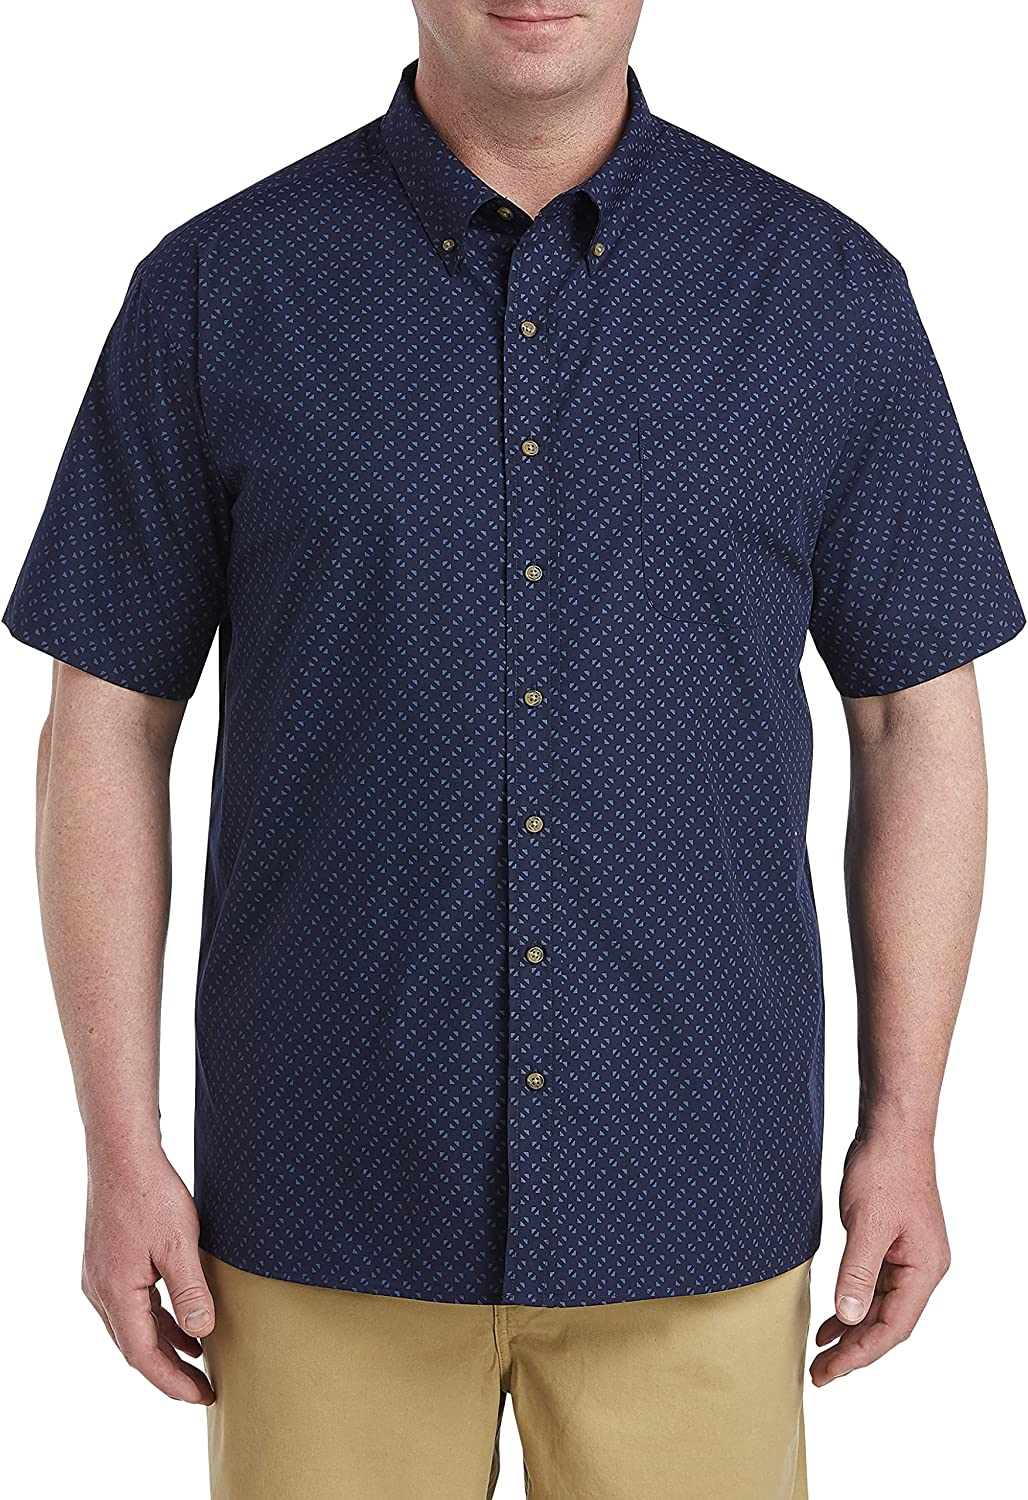 Harbor Bay by DXL Big and Tall Easy-Care Geo Print Sport Shirt